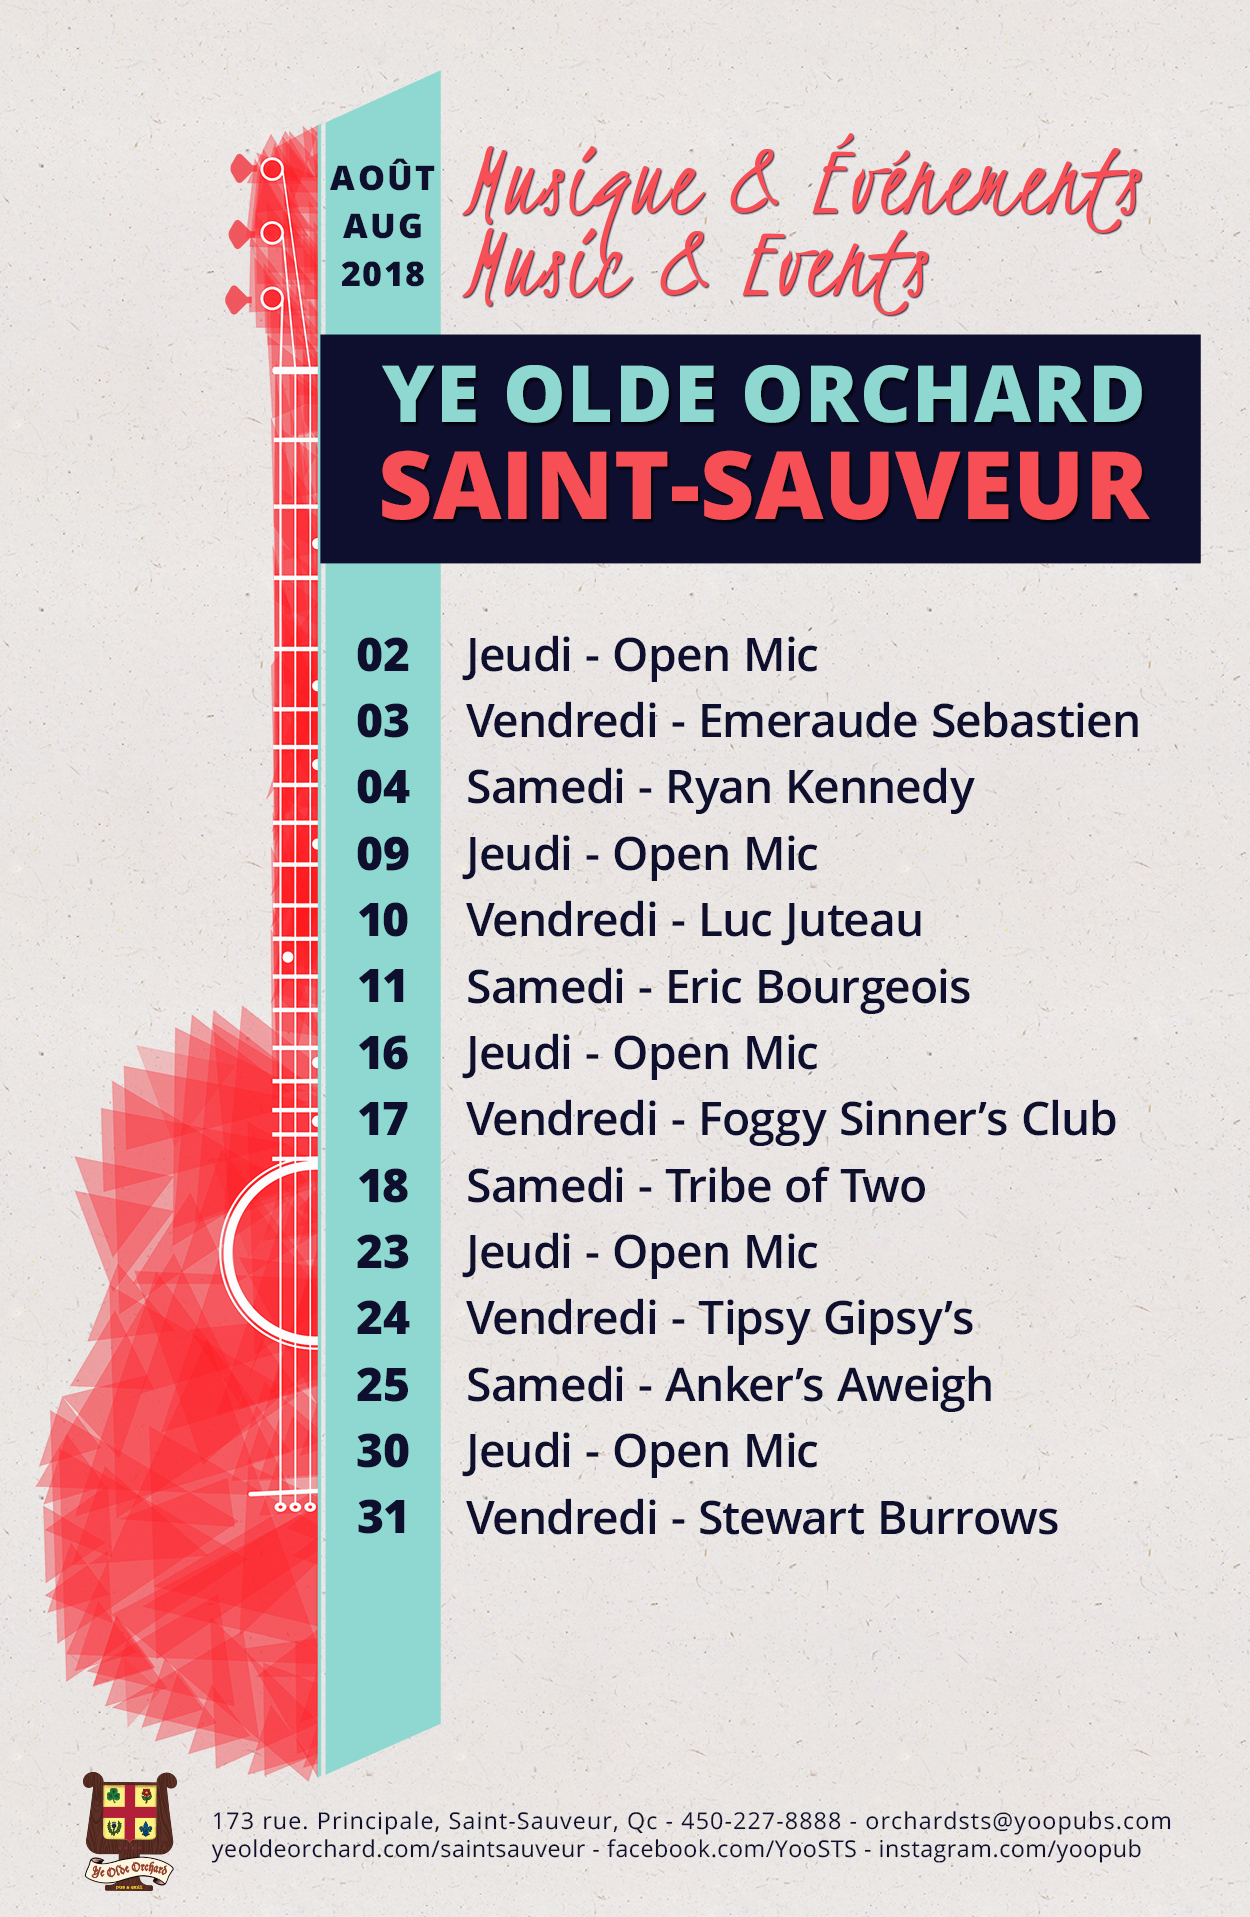 ye-olde-orchard-pub-music-and-events-calendar-2-saint-sauveur-august-2018-WEB